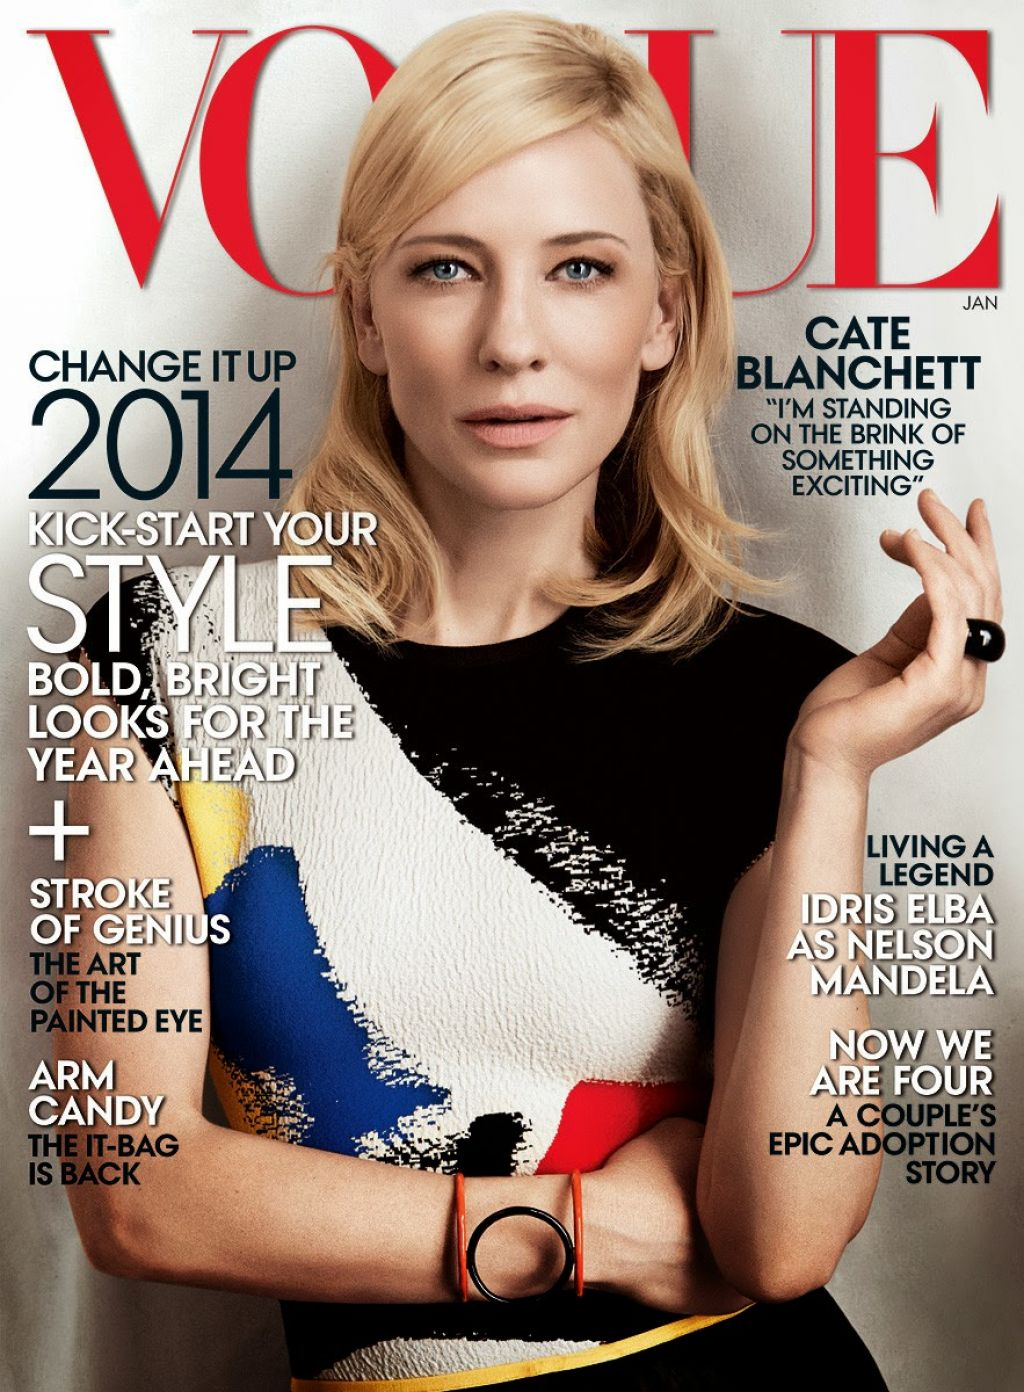 Cate Blanchett - VOGUE Magazine (US) - January 2014 Issue